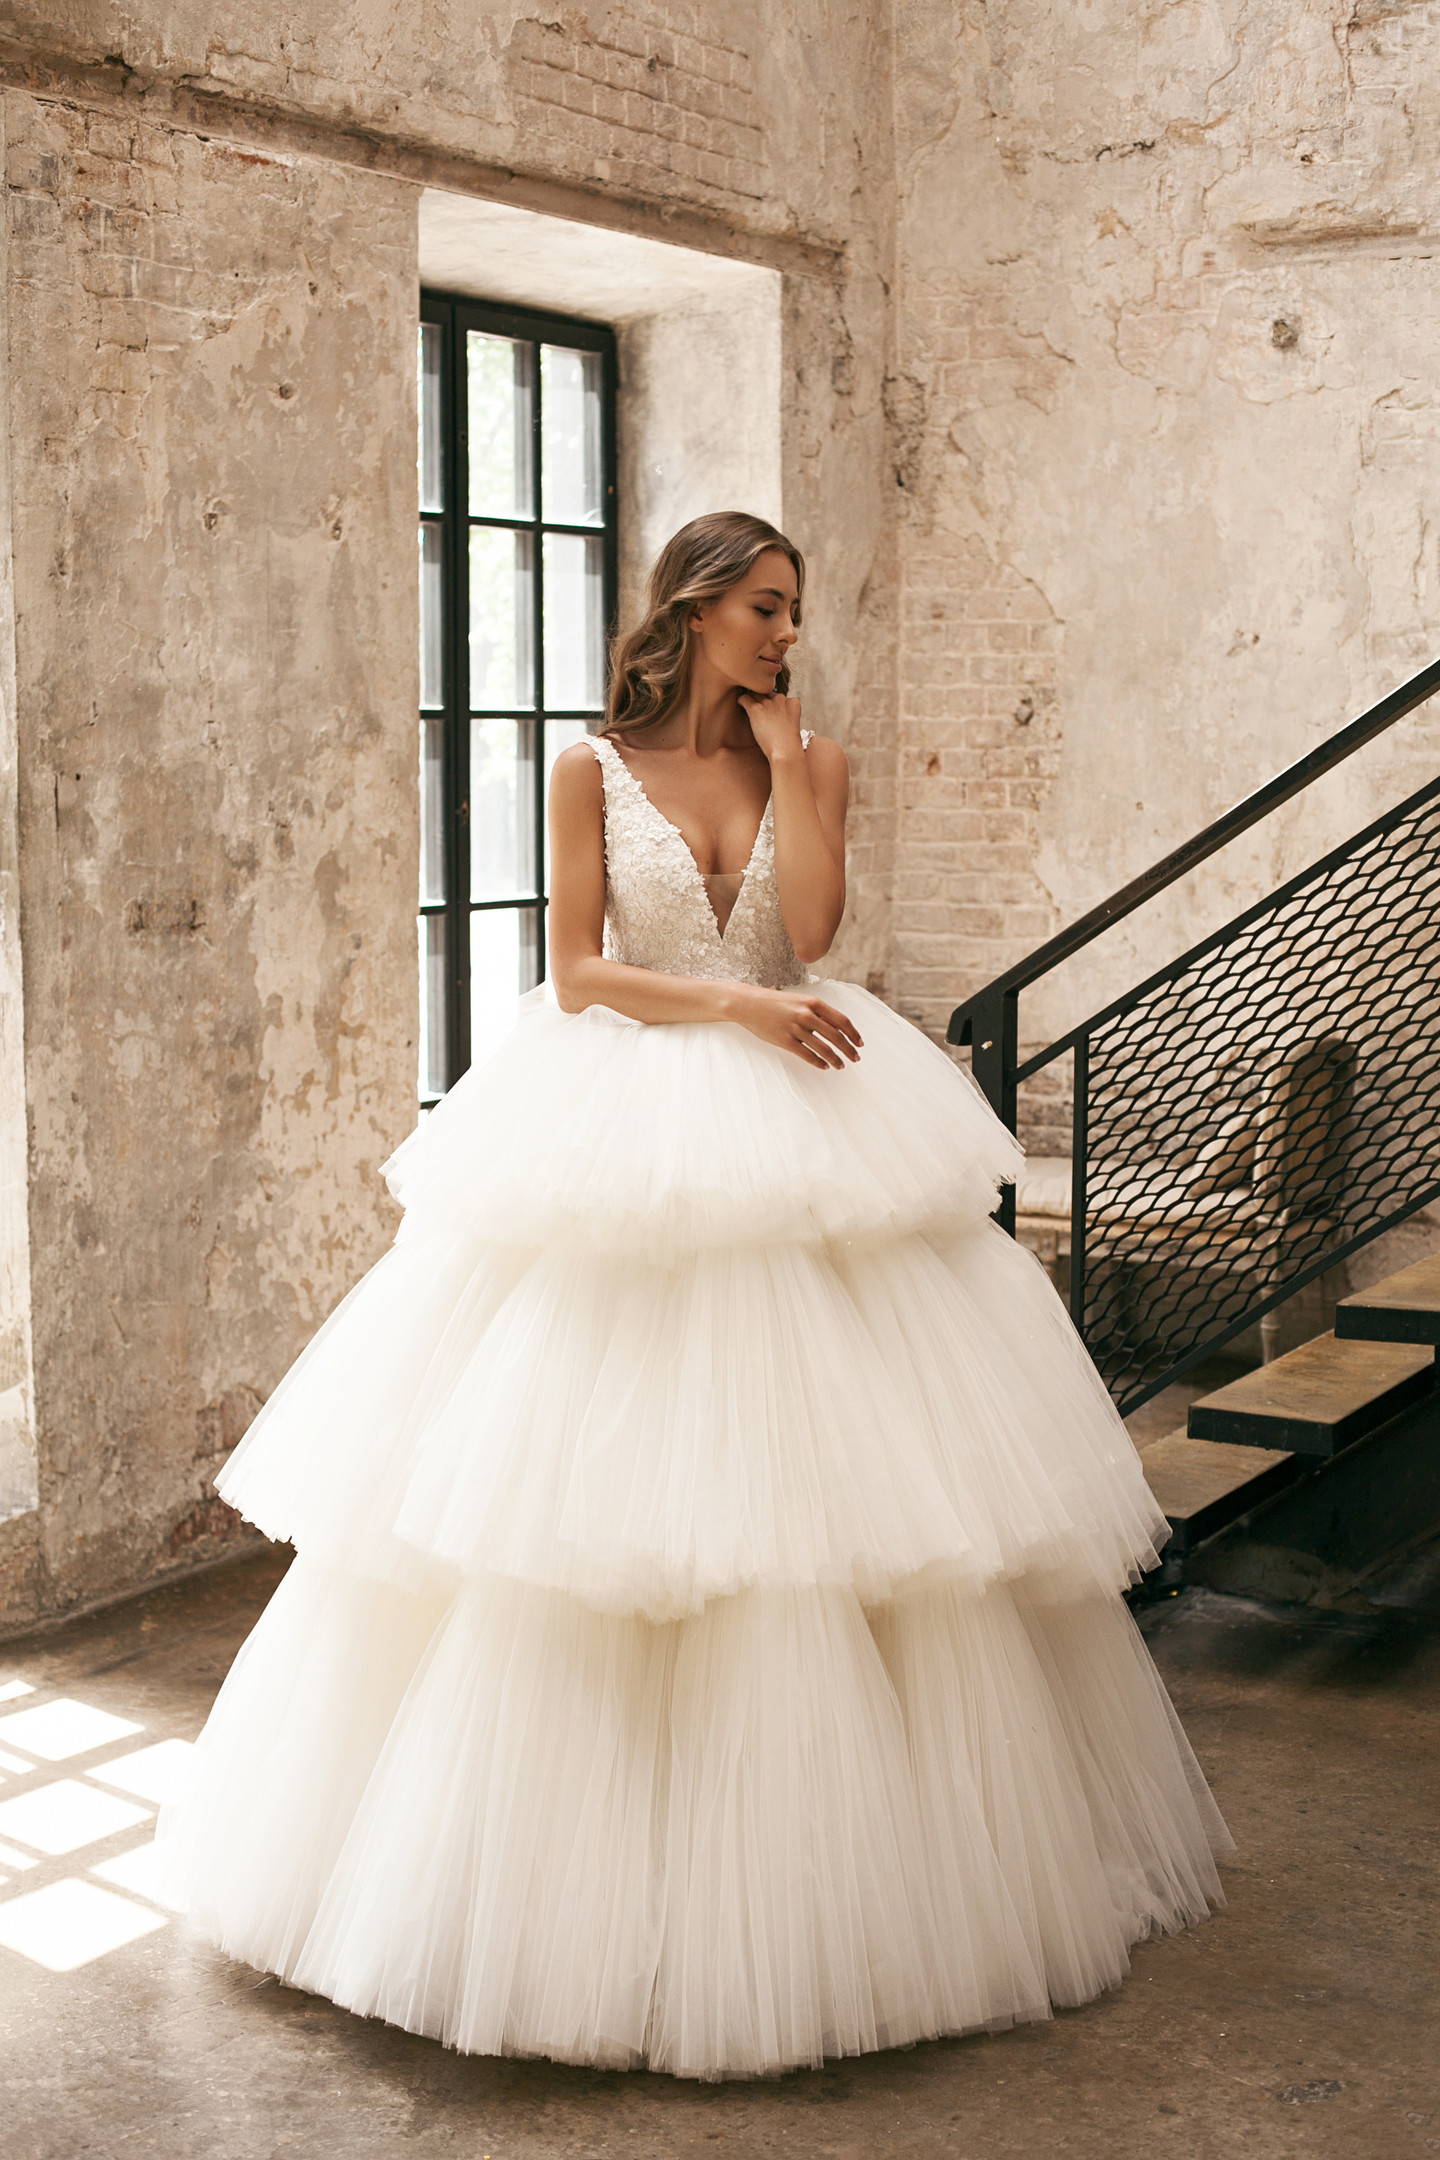 Olympia gown, 2018, couture, gown, dress, bridal, off-white, lace, full silhouette, tulle